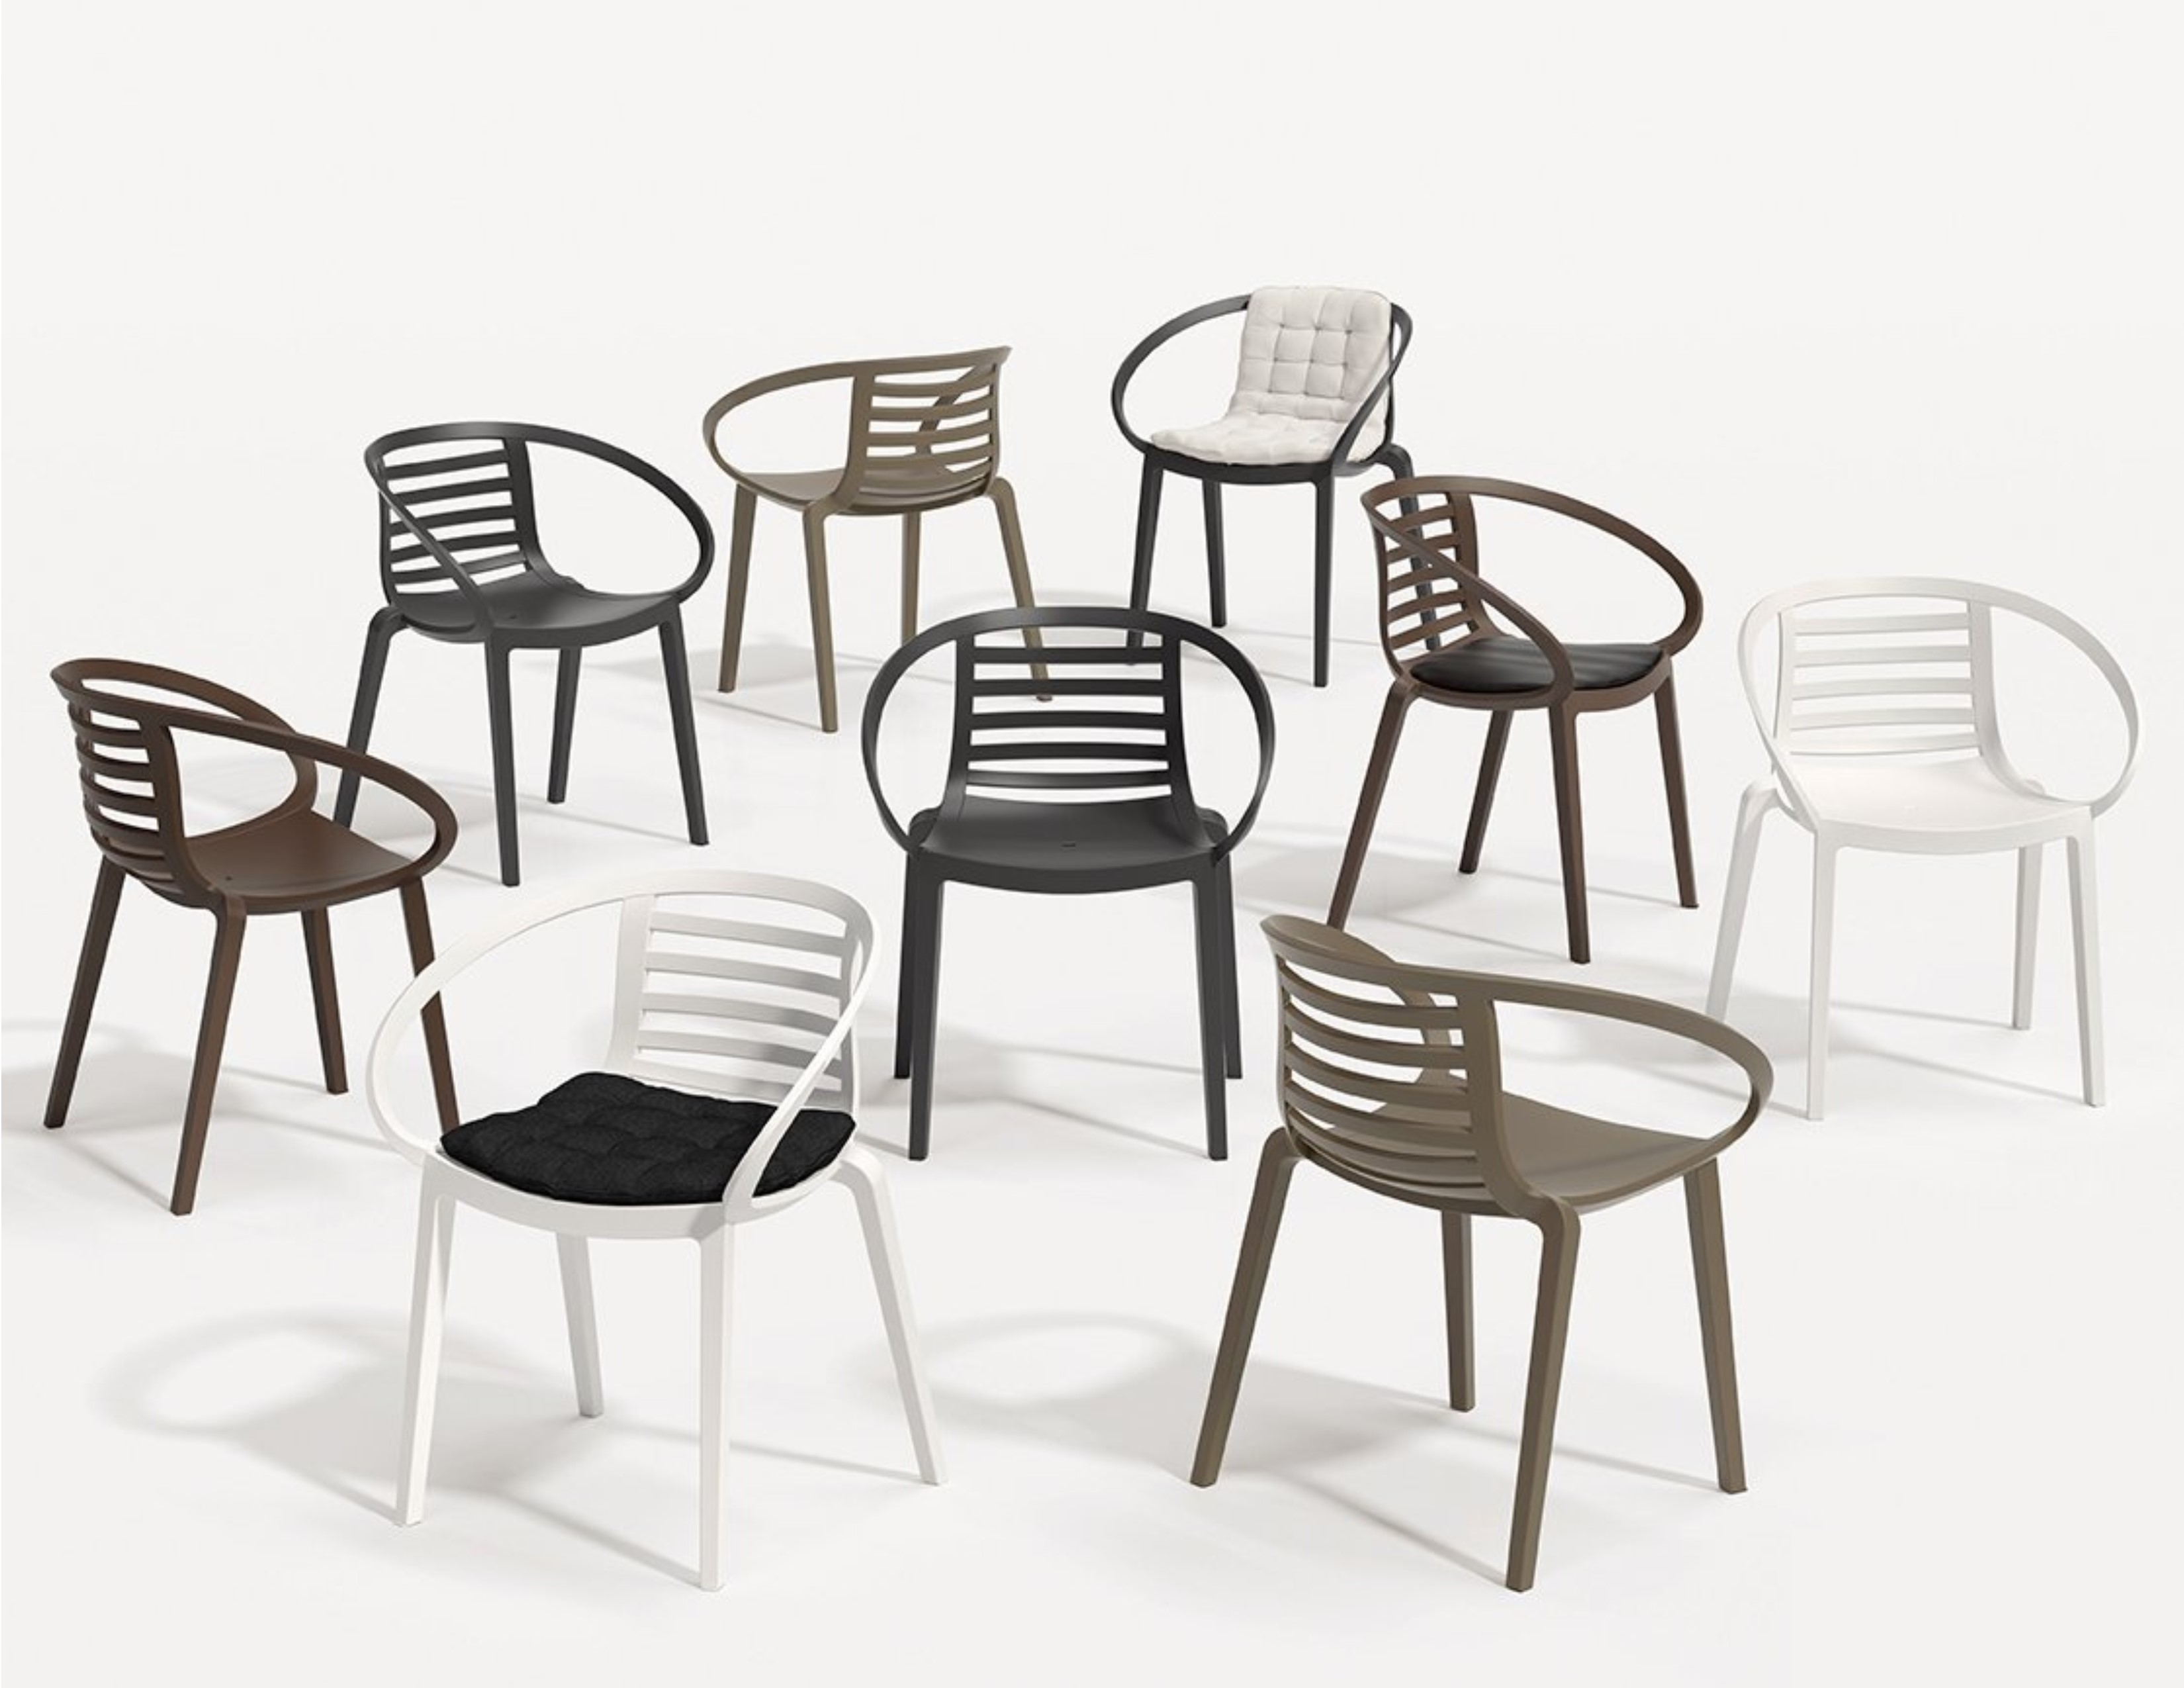 Prime Ambo Stackable Dining Chair Home Or Hospitality Couture Gmtry Best Dining Table And Chair Ideas Images Gmtryco